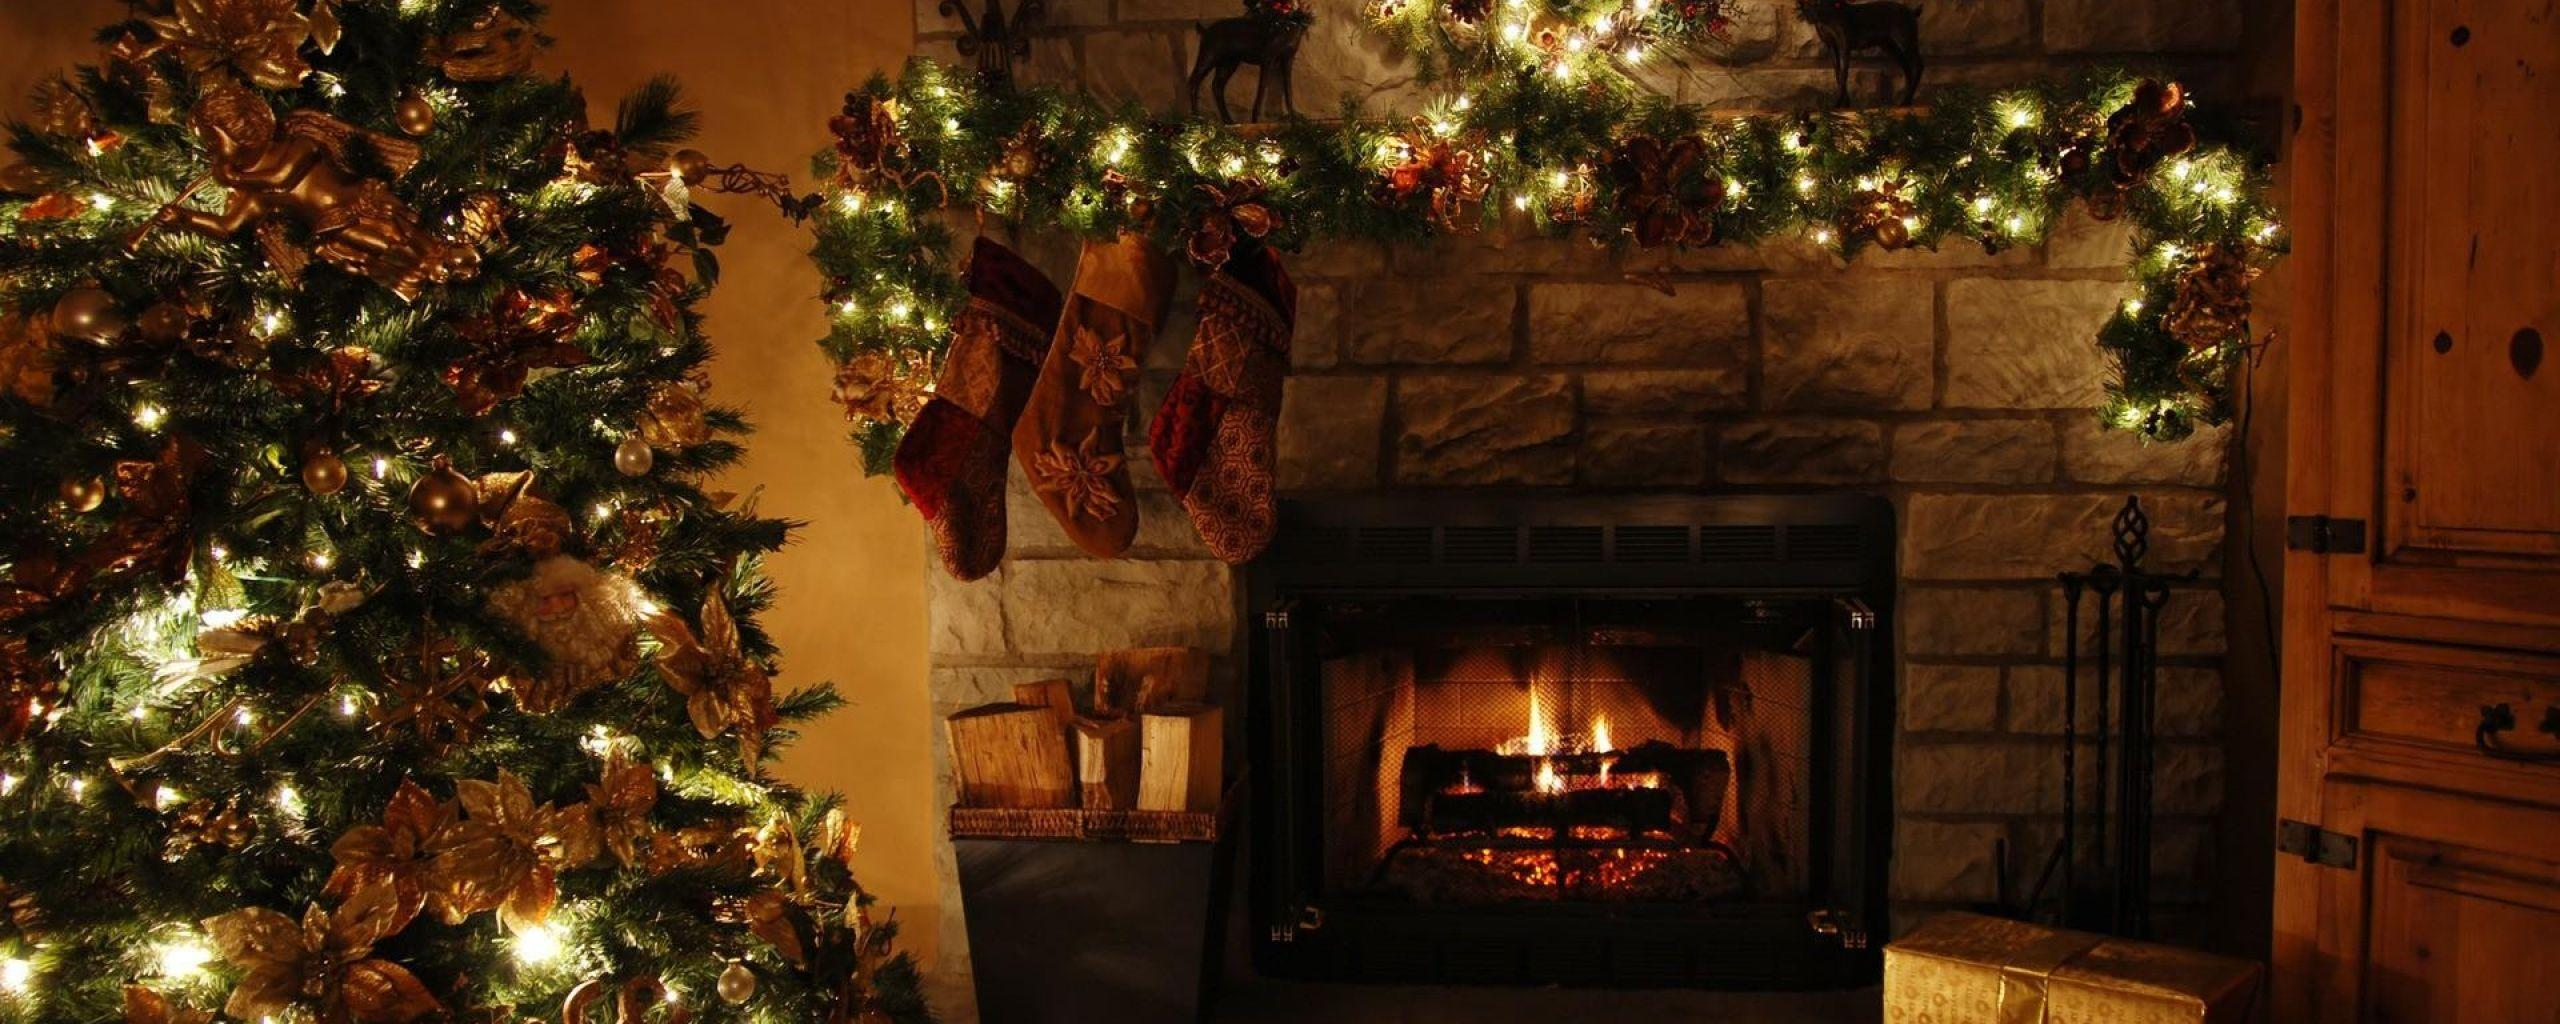 Christmas Tree Garland Gift Holiday Fireplace X Wallpapers